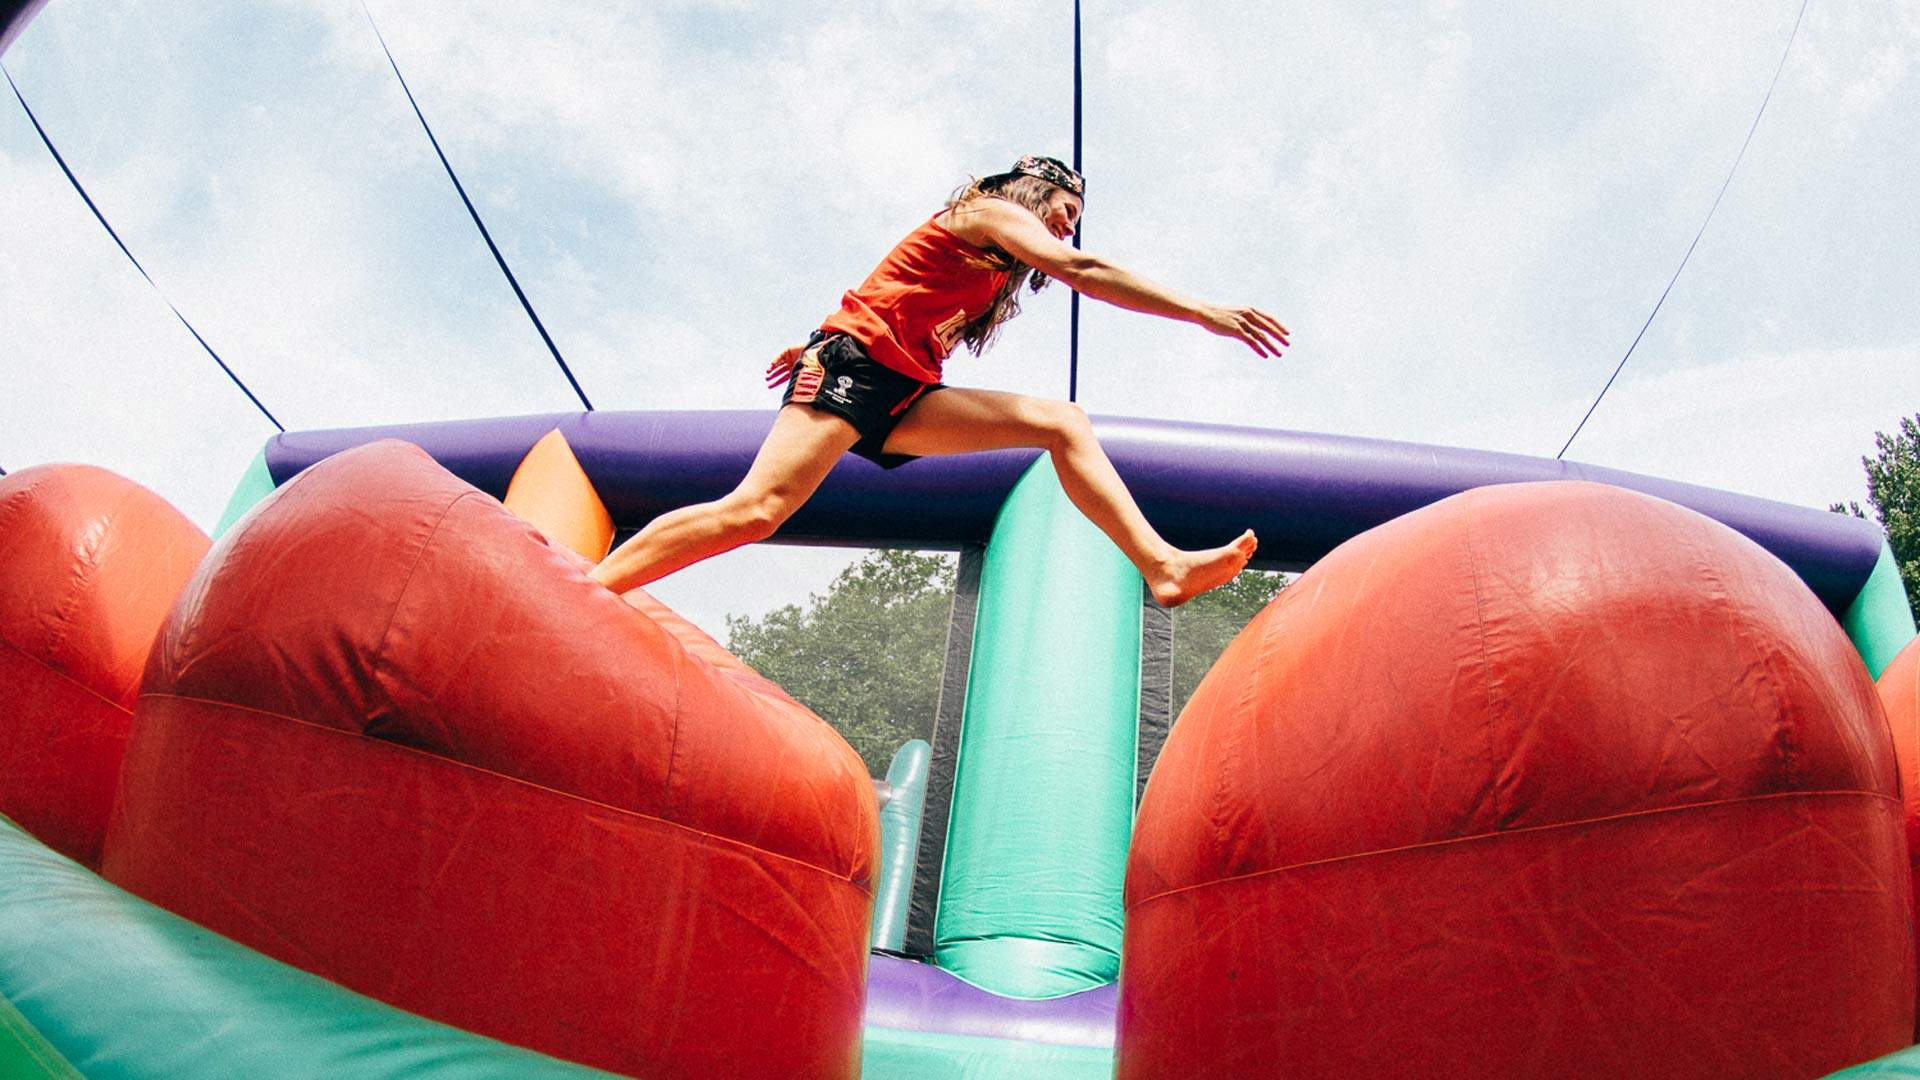 A 300-Metre-Long Inflatable Obstacle Course for Adults Is Coming to Australia